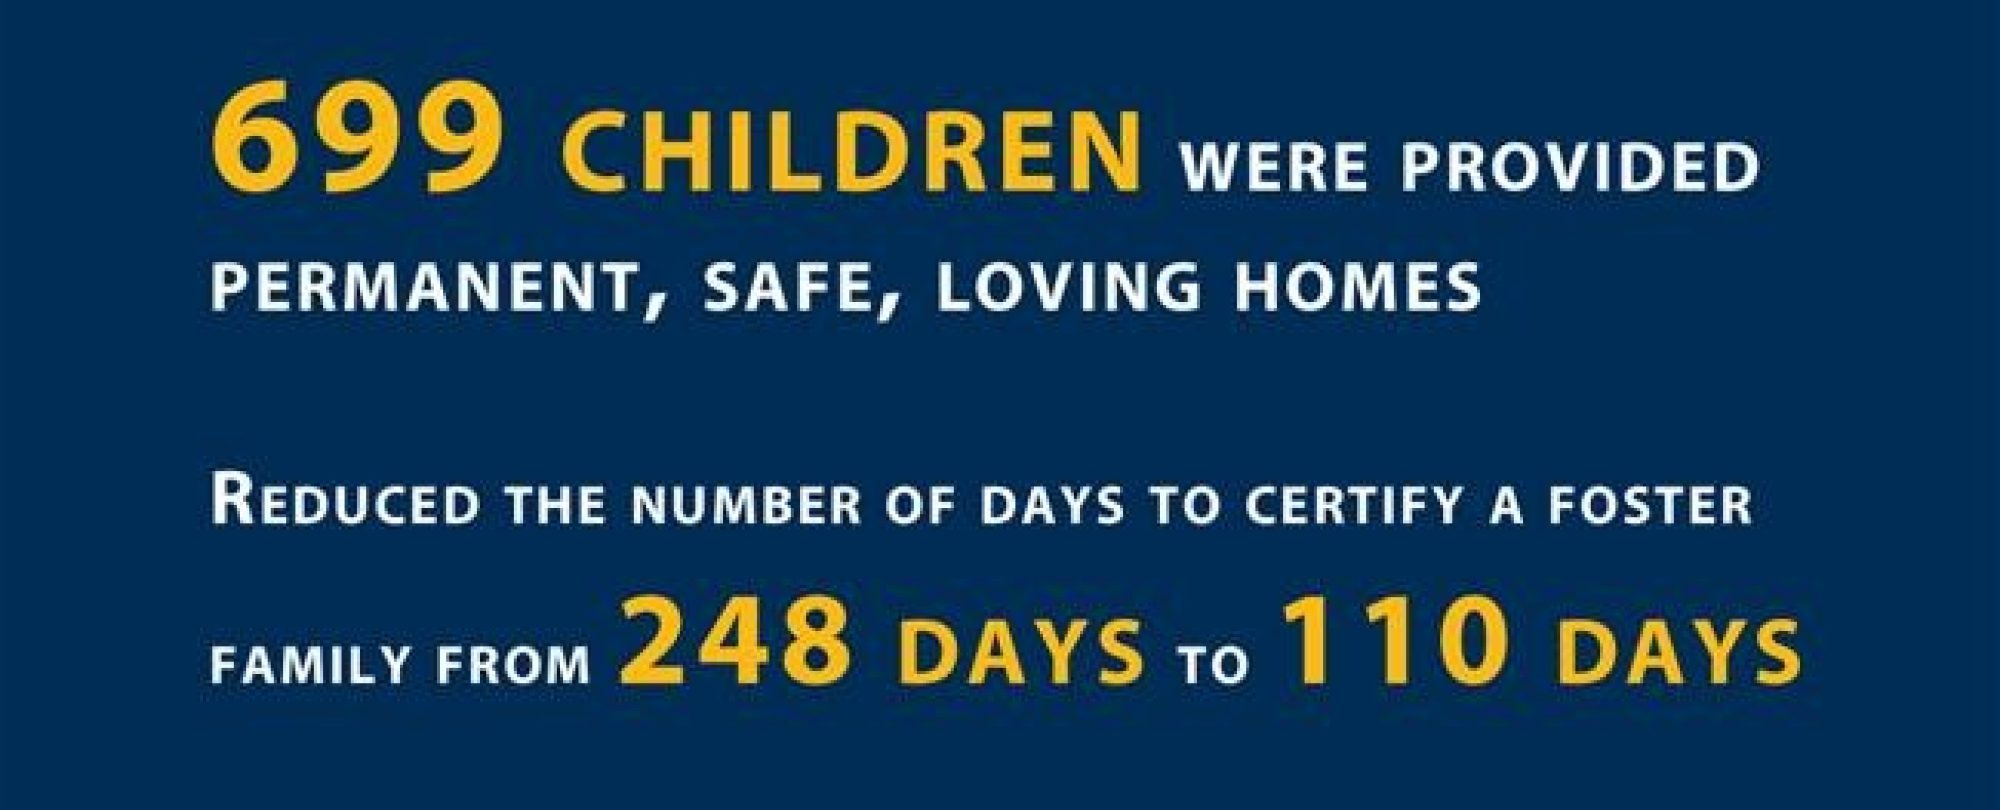 699 children were provided permanent, safe, loving homes. Reduced the number of days to certify a foster family from 248 days to 110 days.